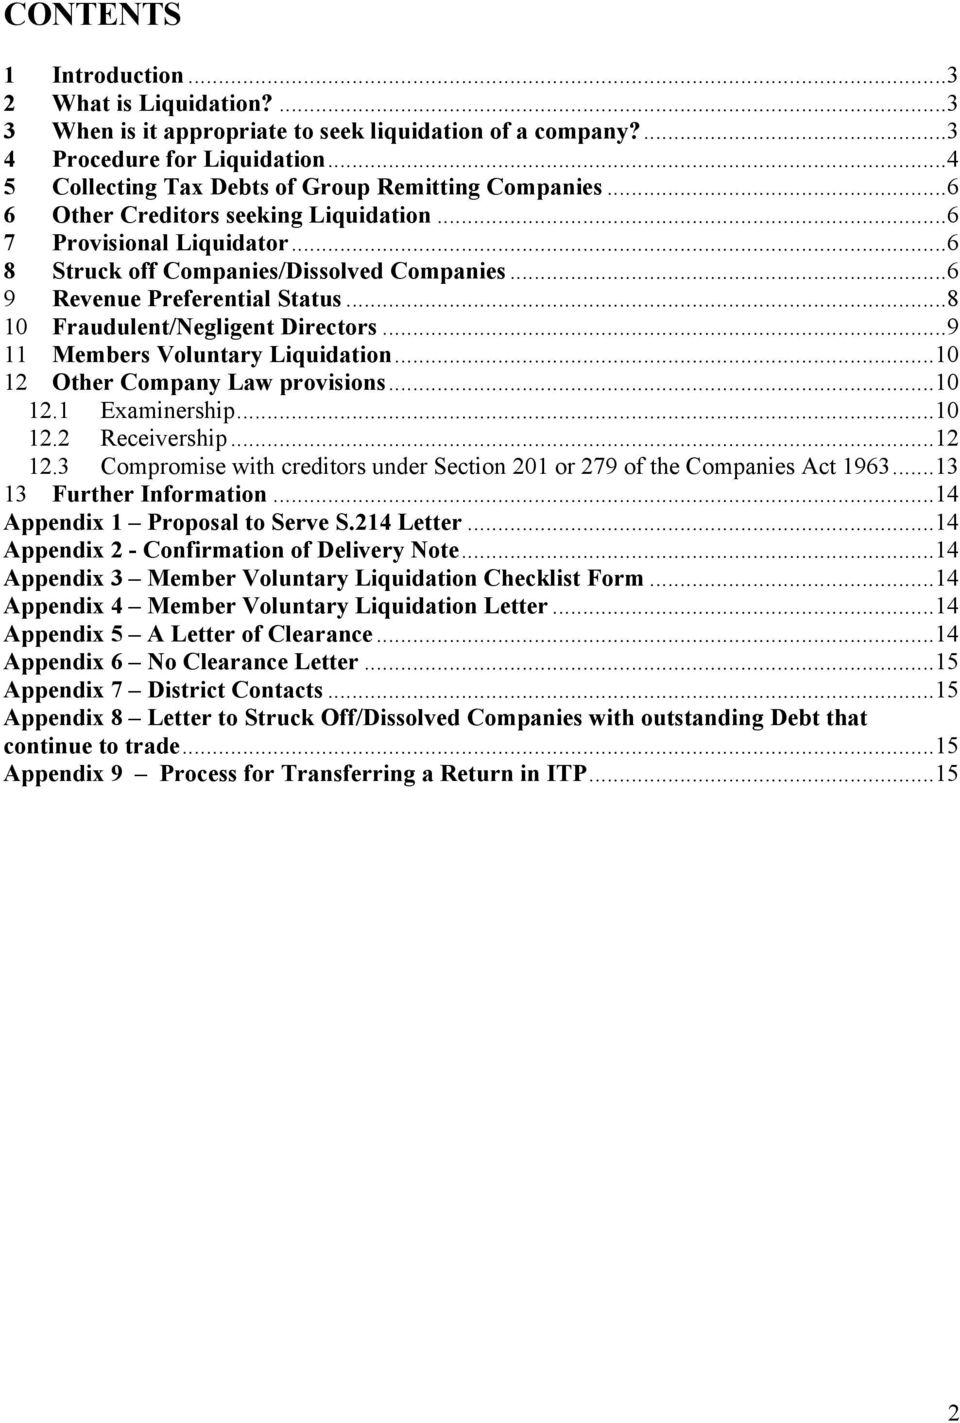 Collection Manual Liquidation of Companies and other Company